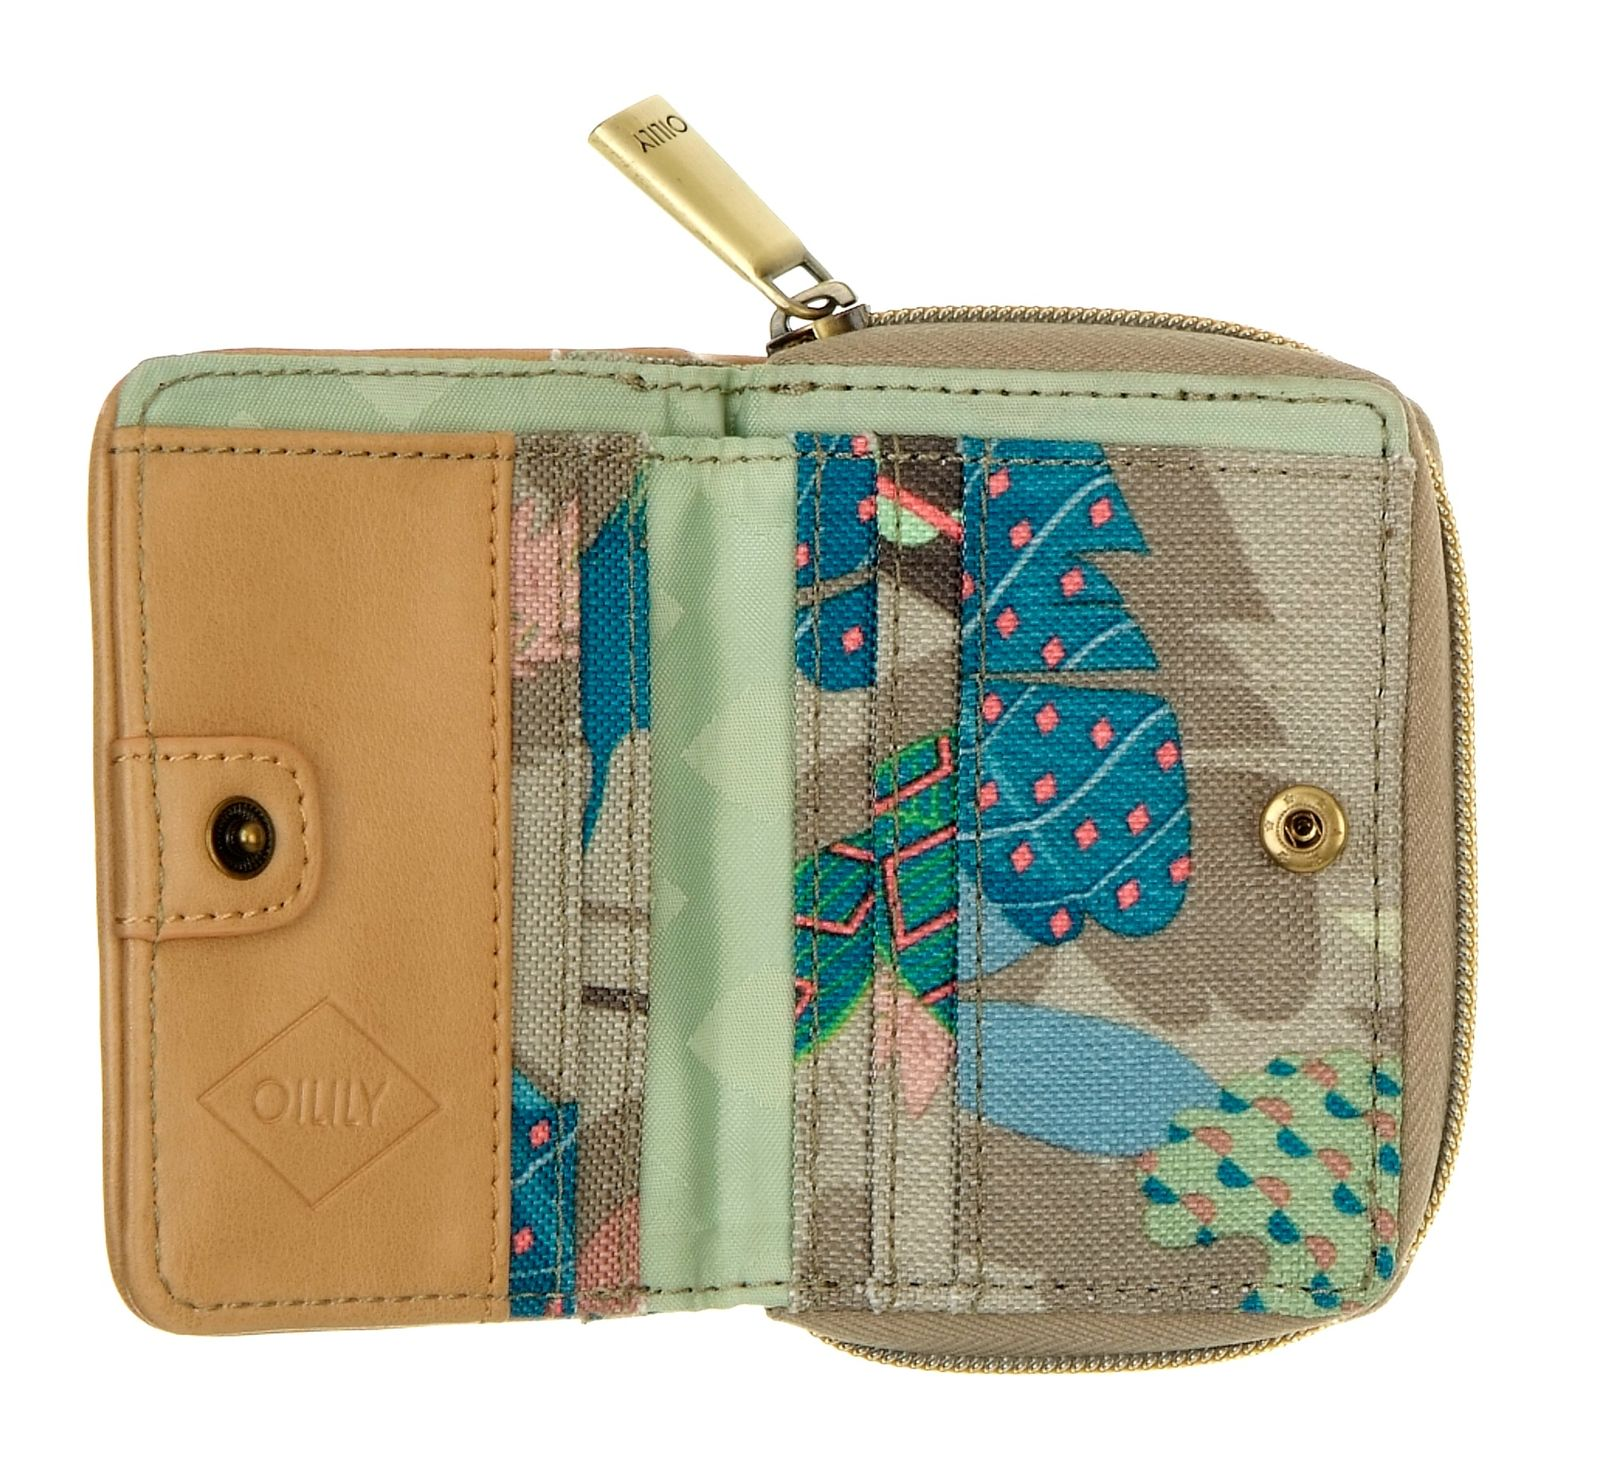 f3ddd1bd085 ... CloseOilily Botanic Pop XS Wallet Nori Green / 19,99 €*Tap To CloseOnly  possible if you pay by Paypal, Amazon Payments, Credit Card, Cash on  Delivery, ...